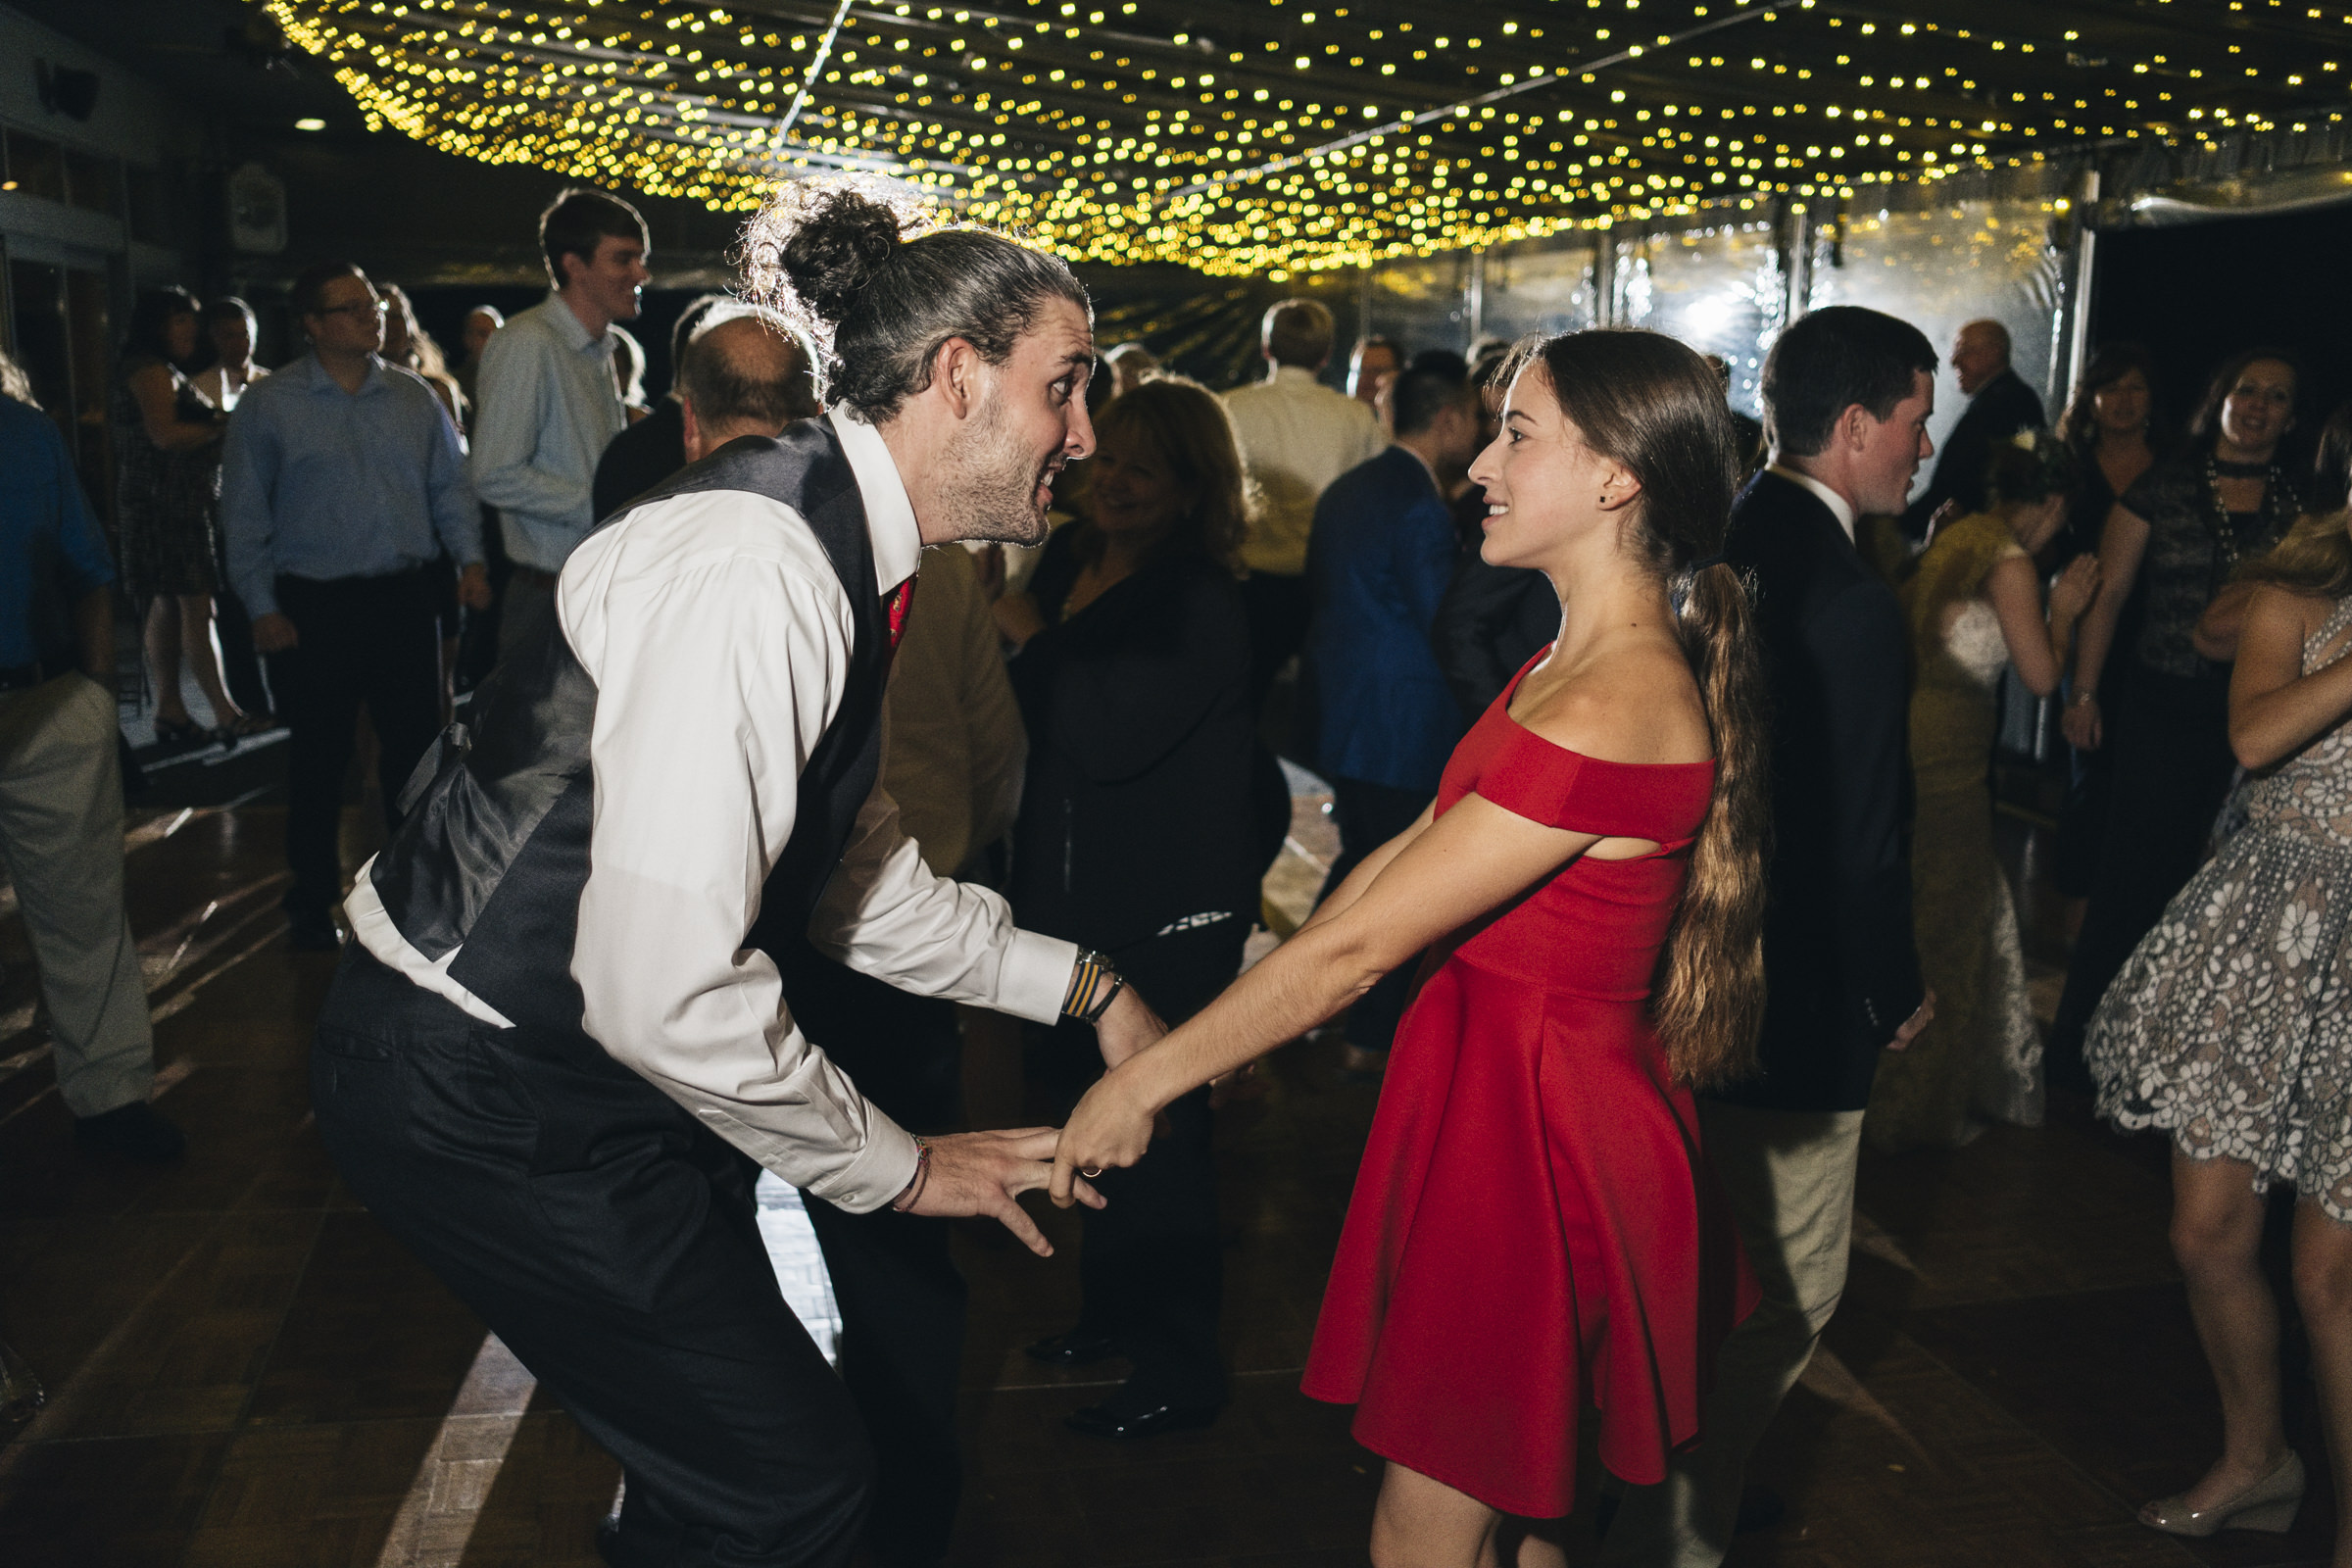 Guests of the bride and groom dance at their wedding reception in a bright red dress